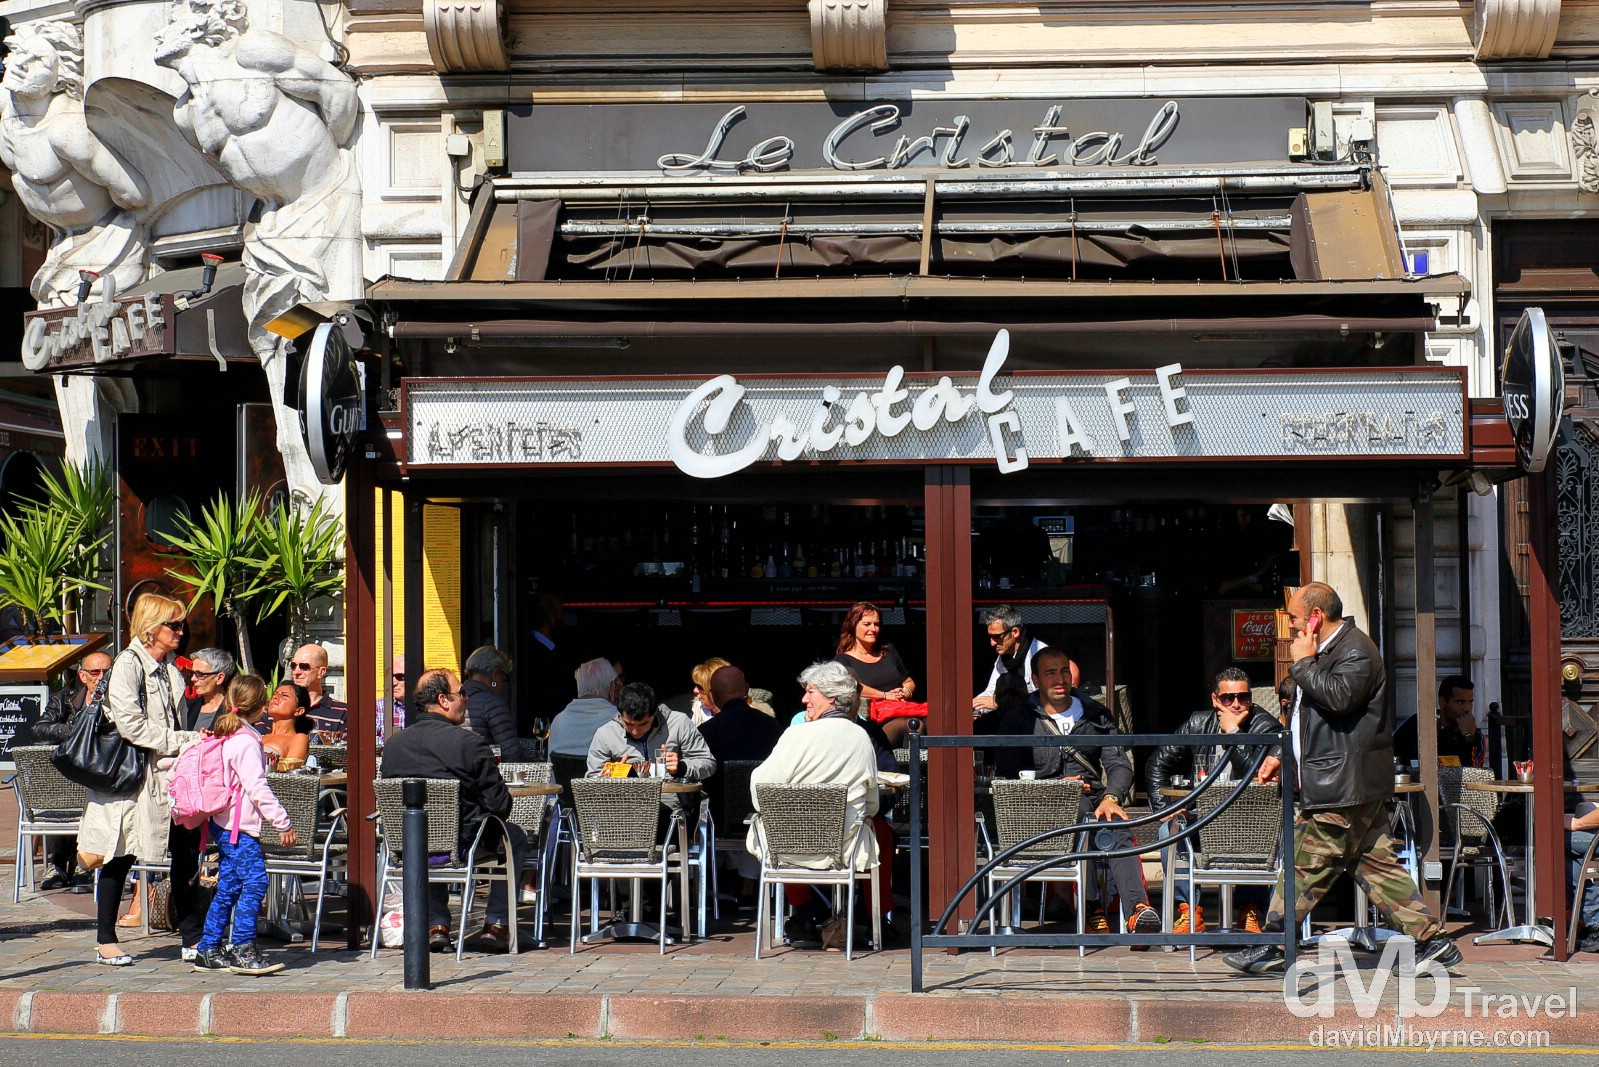 Le Cristal Café, Cannes, Côte d'Azur, France. March 15th, 2014.